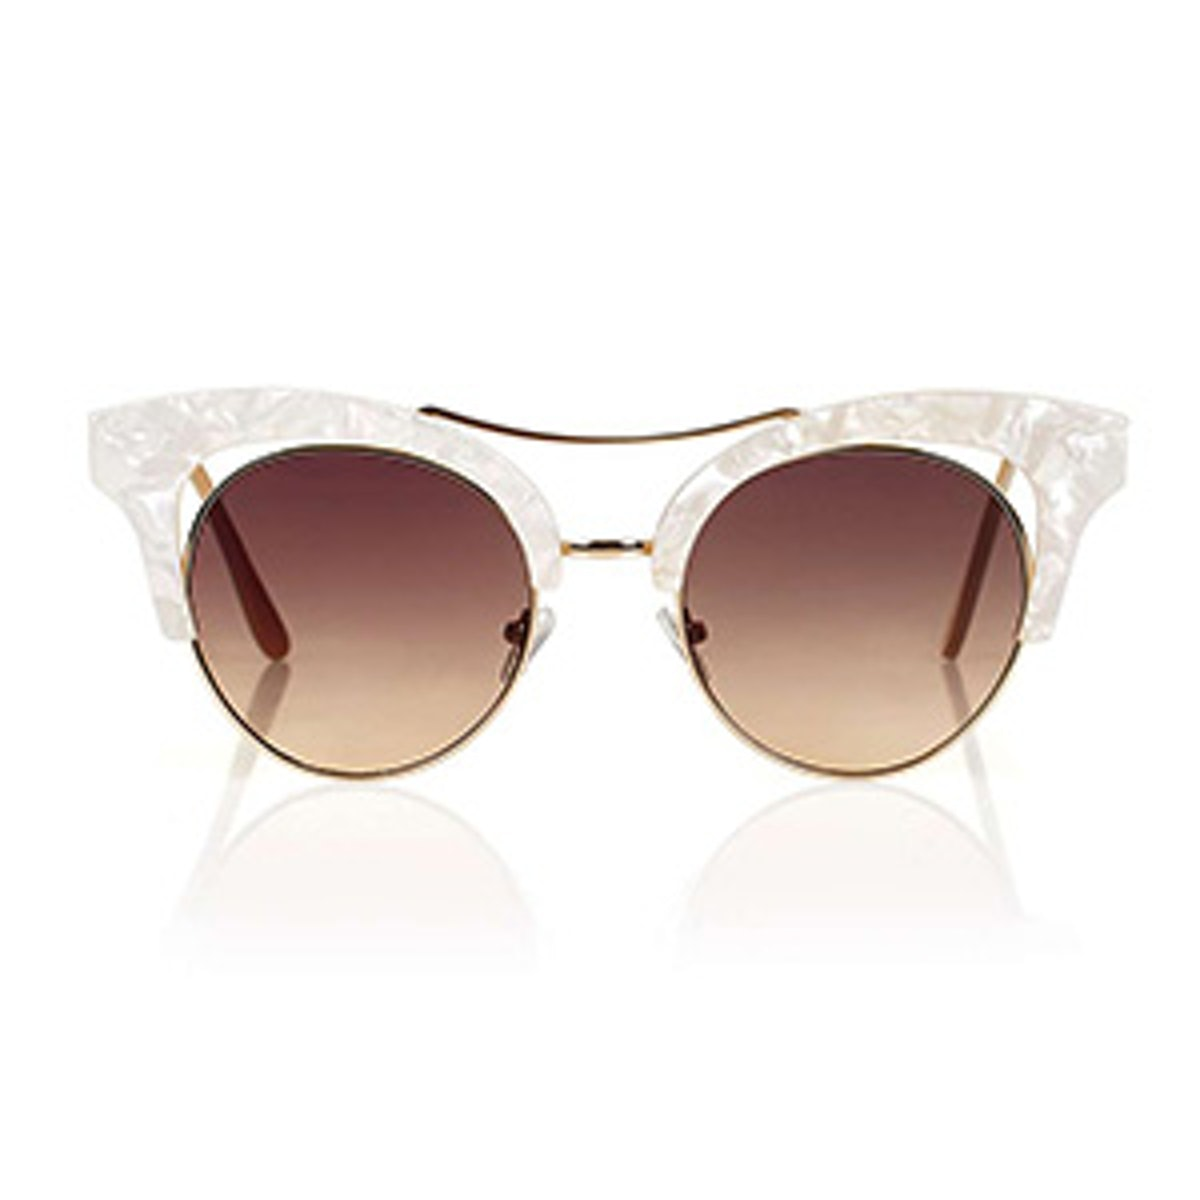 Extreme Clubmaster Sunglasses